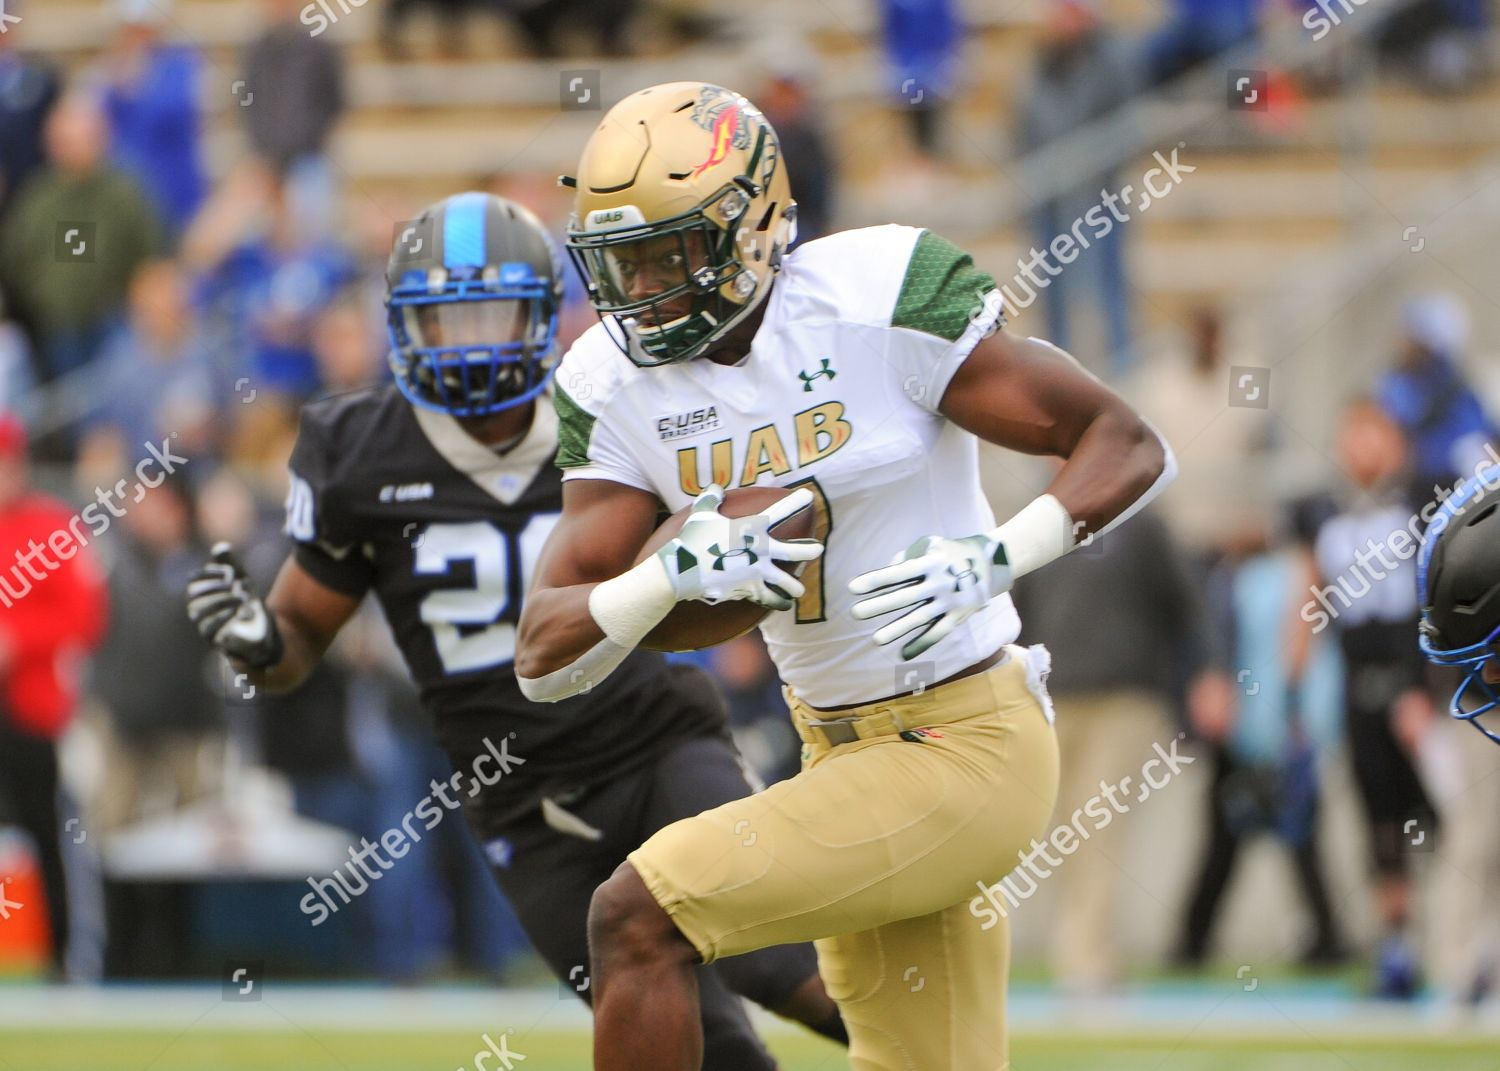 newest 59907 2a463 UAB wide receiver Xavier Ubosi 7 runs Editorial Stock Photo ...